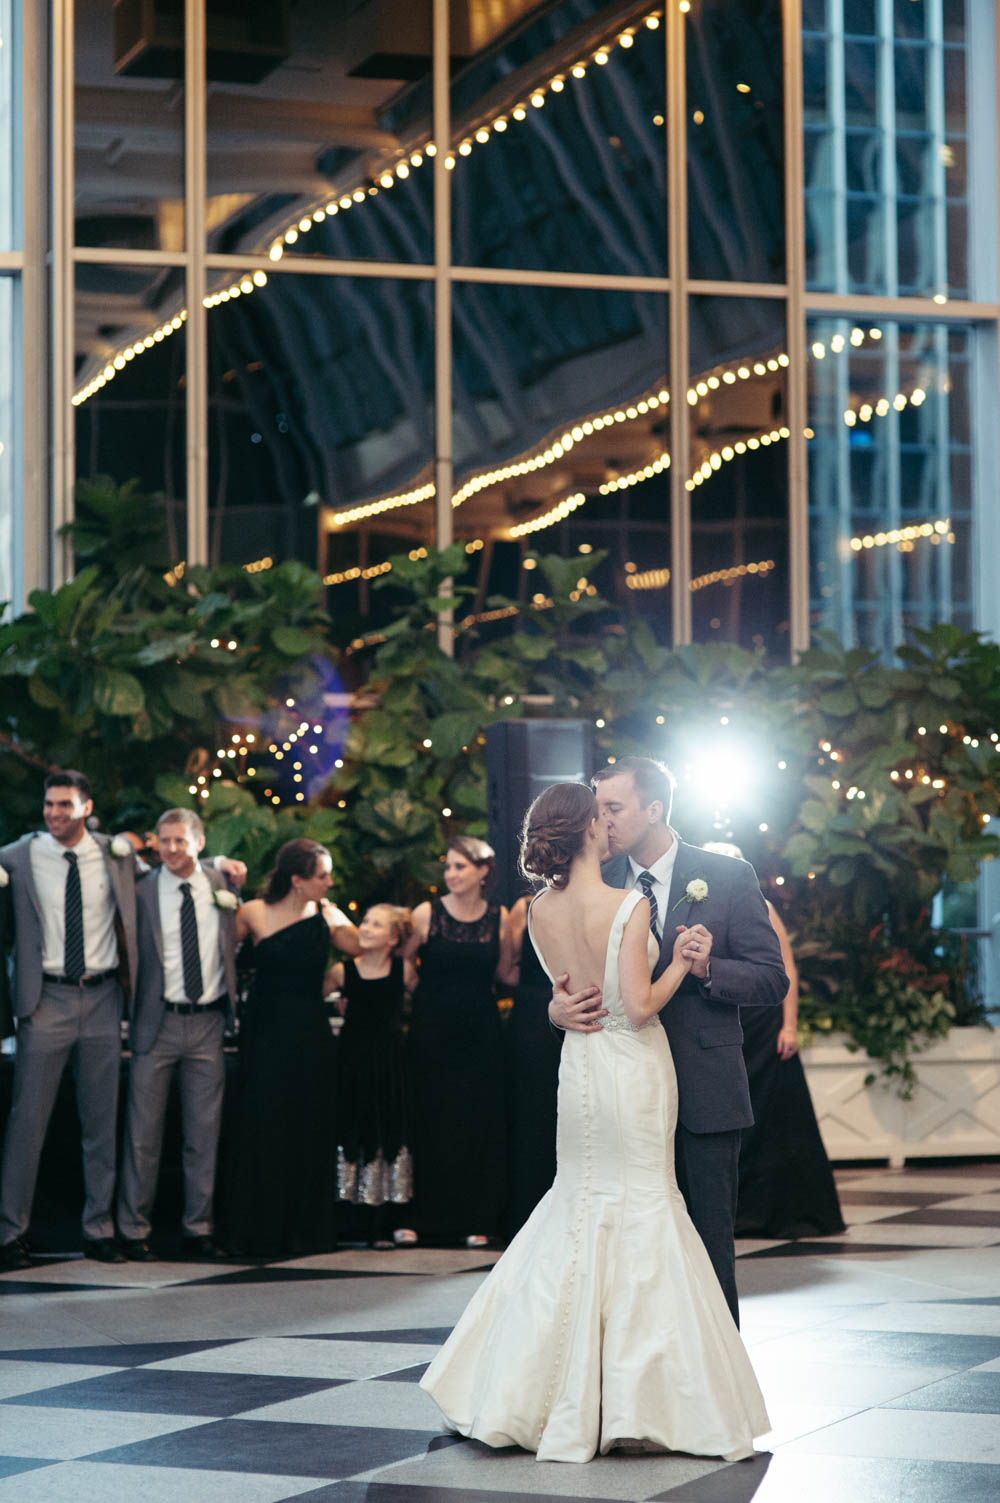 wintergarden-wedding-pittsburgh-121.jpg